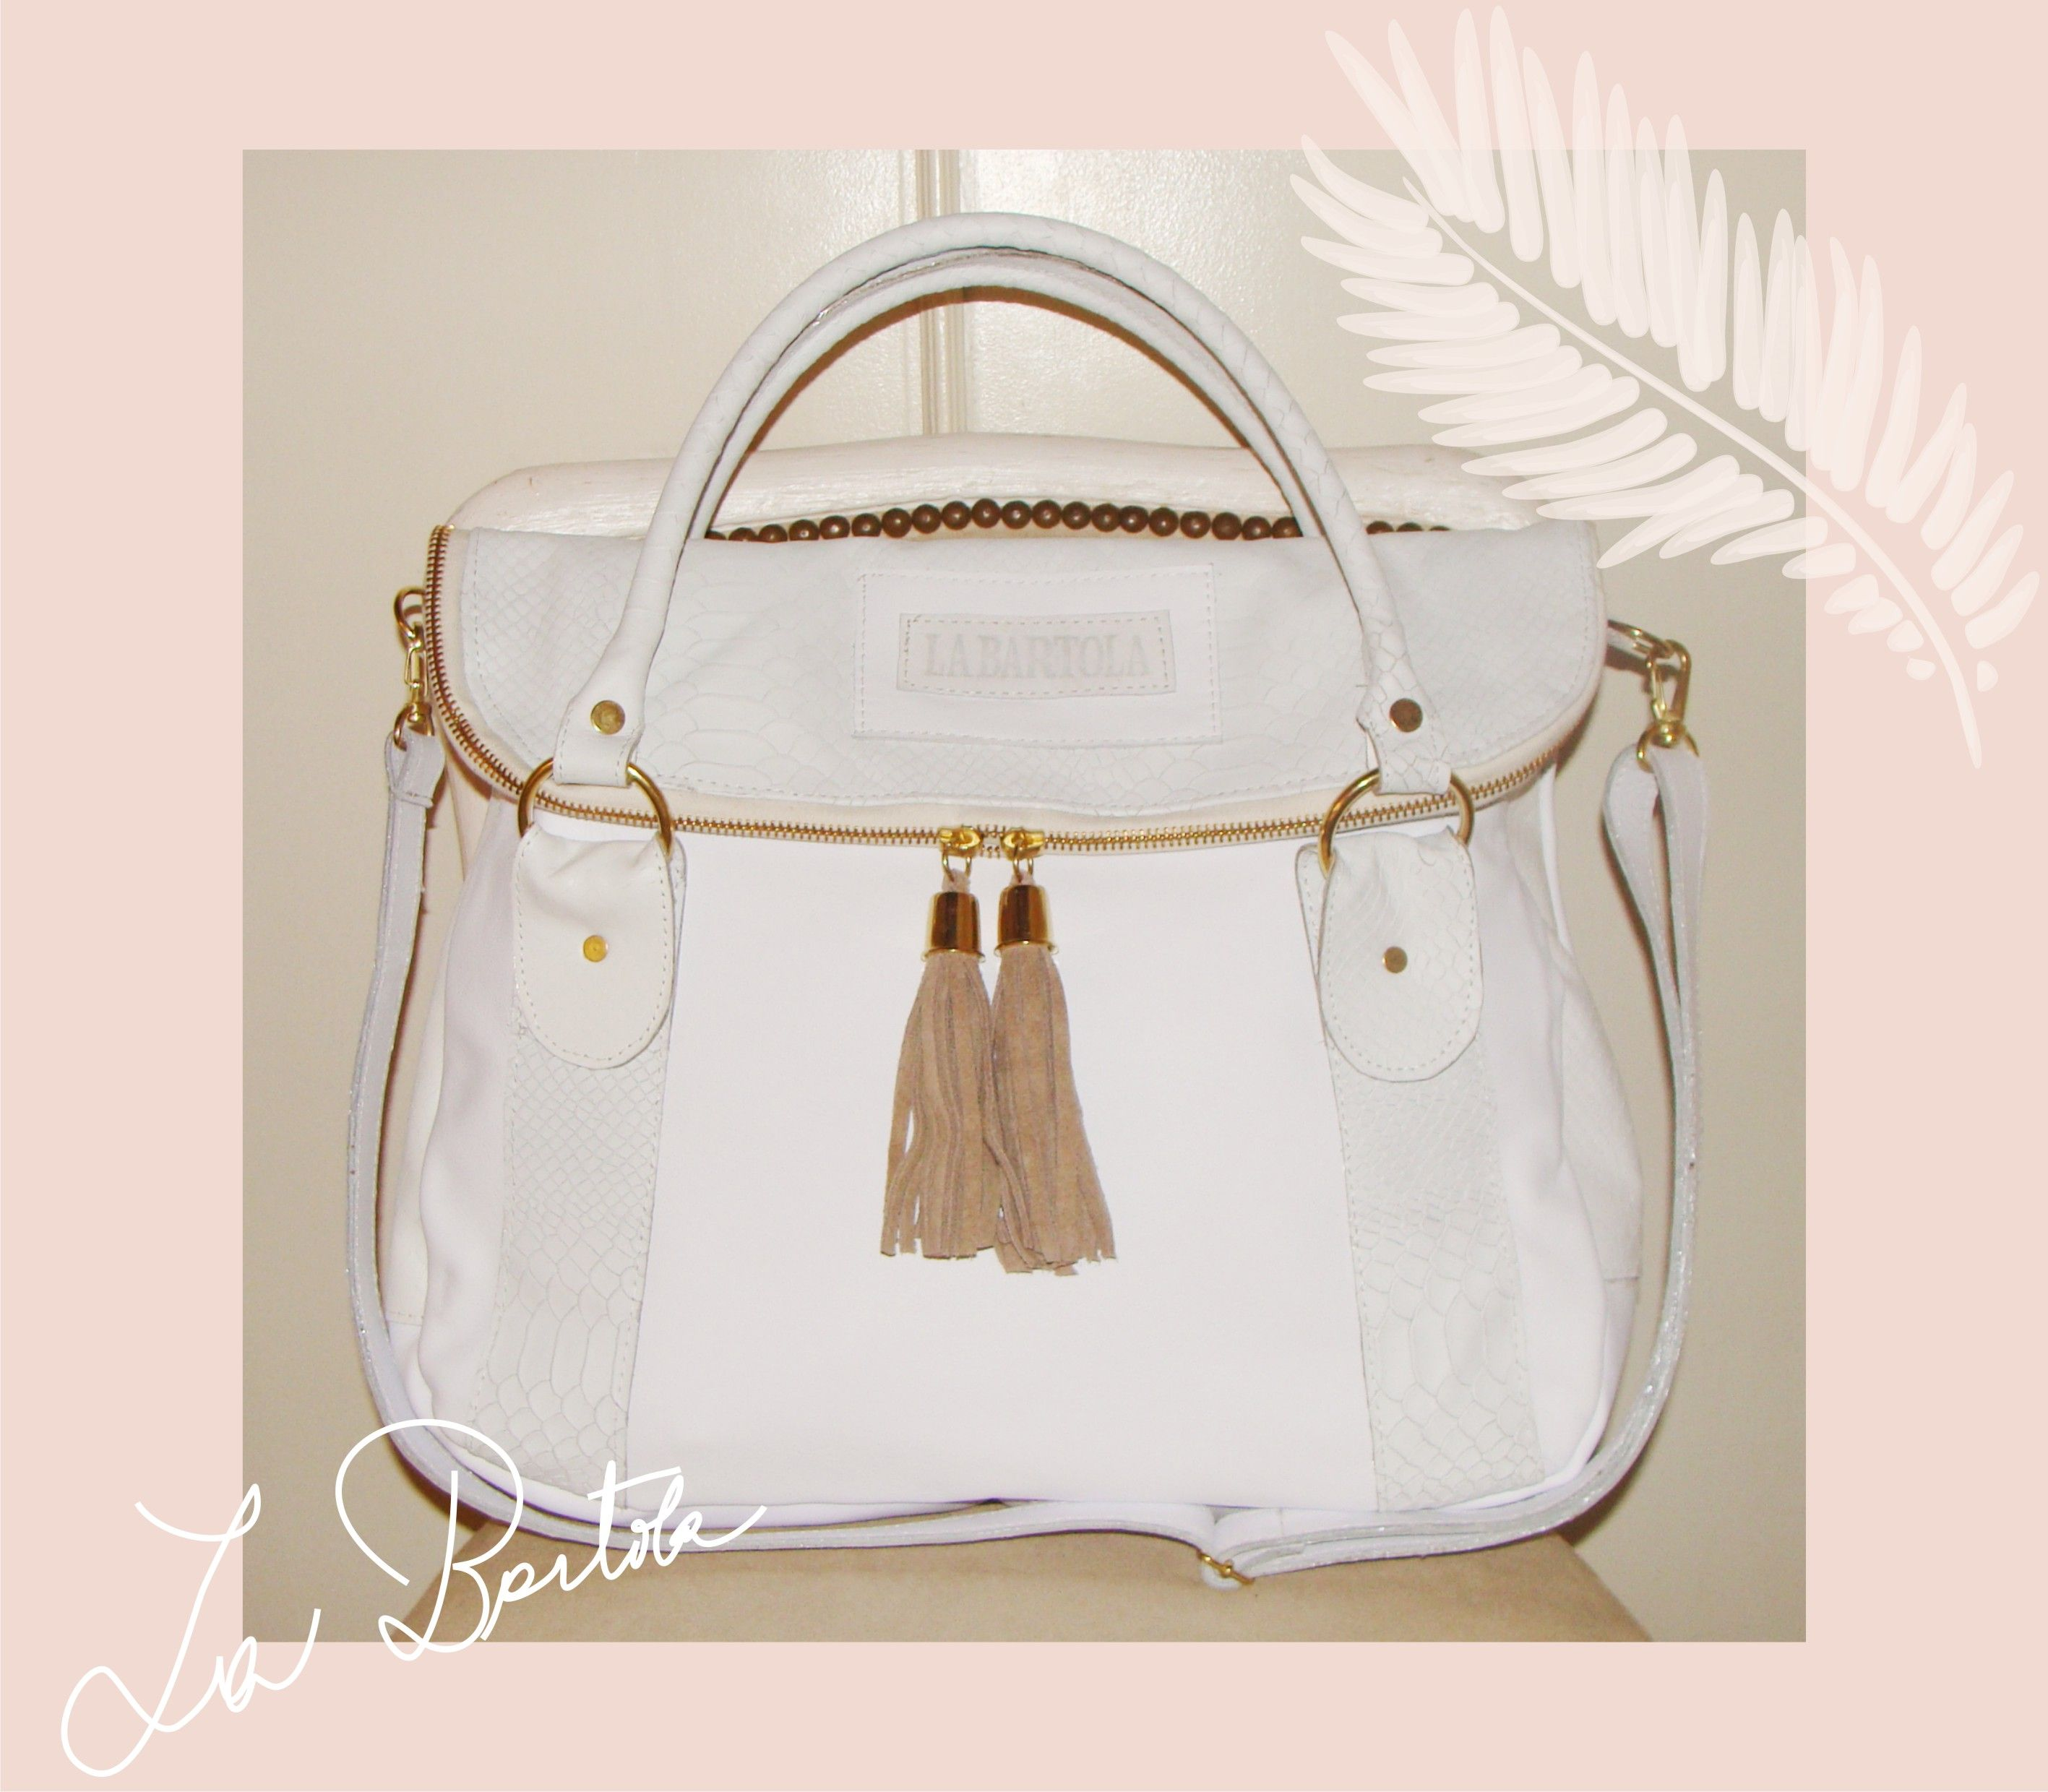 cartera borla white